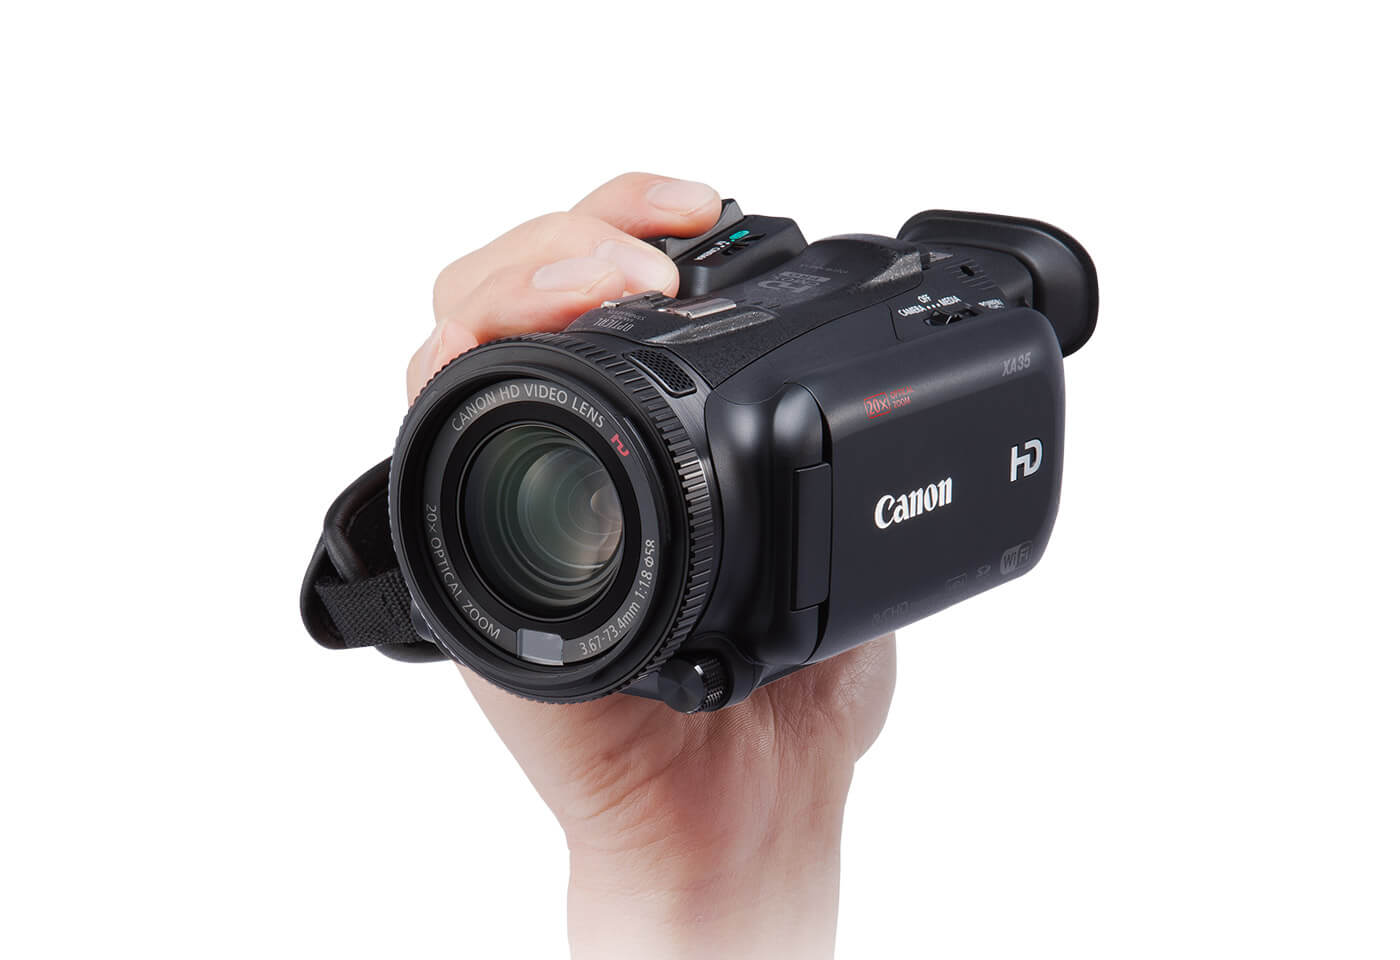 Canon XA30 digital camcorder with handle removed for more compact design